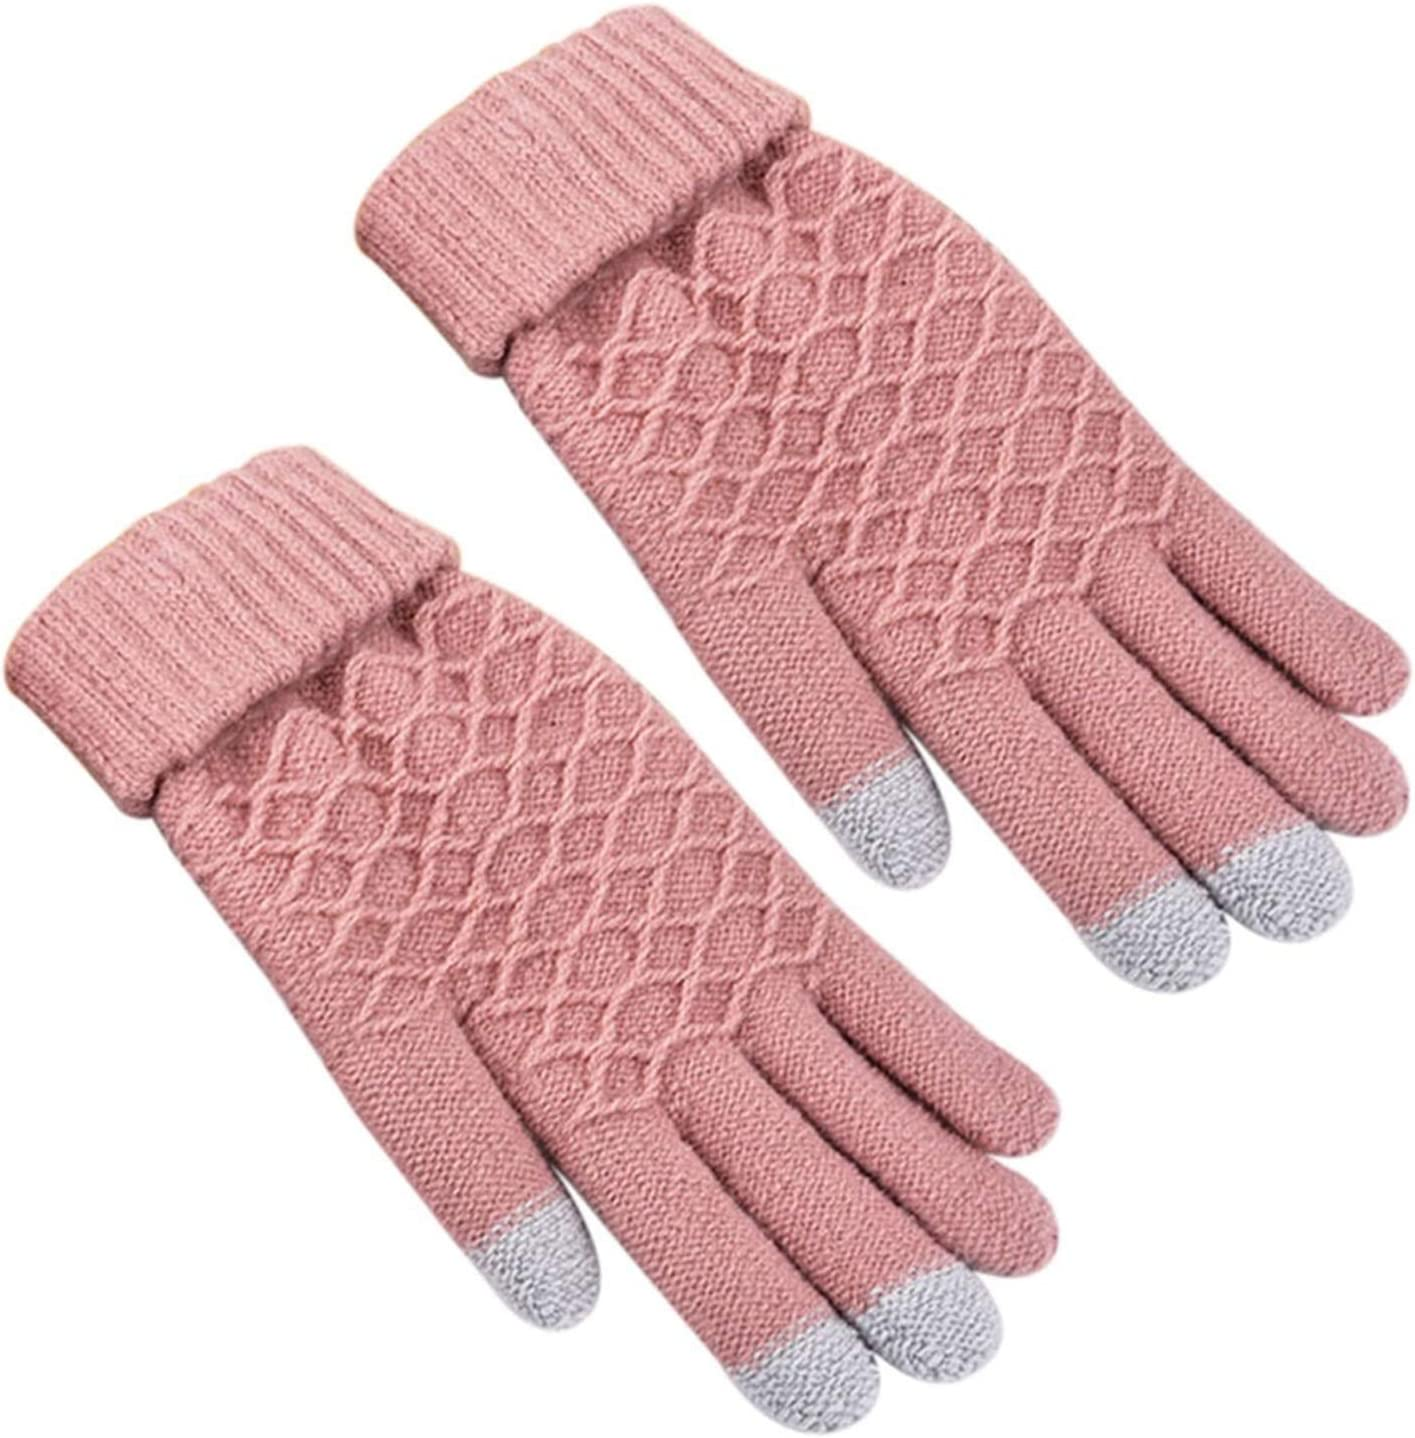 DZHT Touch Screen Sensory Gloves for Women Gloves Girl Female Stretch Knit Gloves Mittens Winter Warm (Color : Pink)